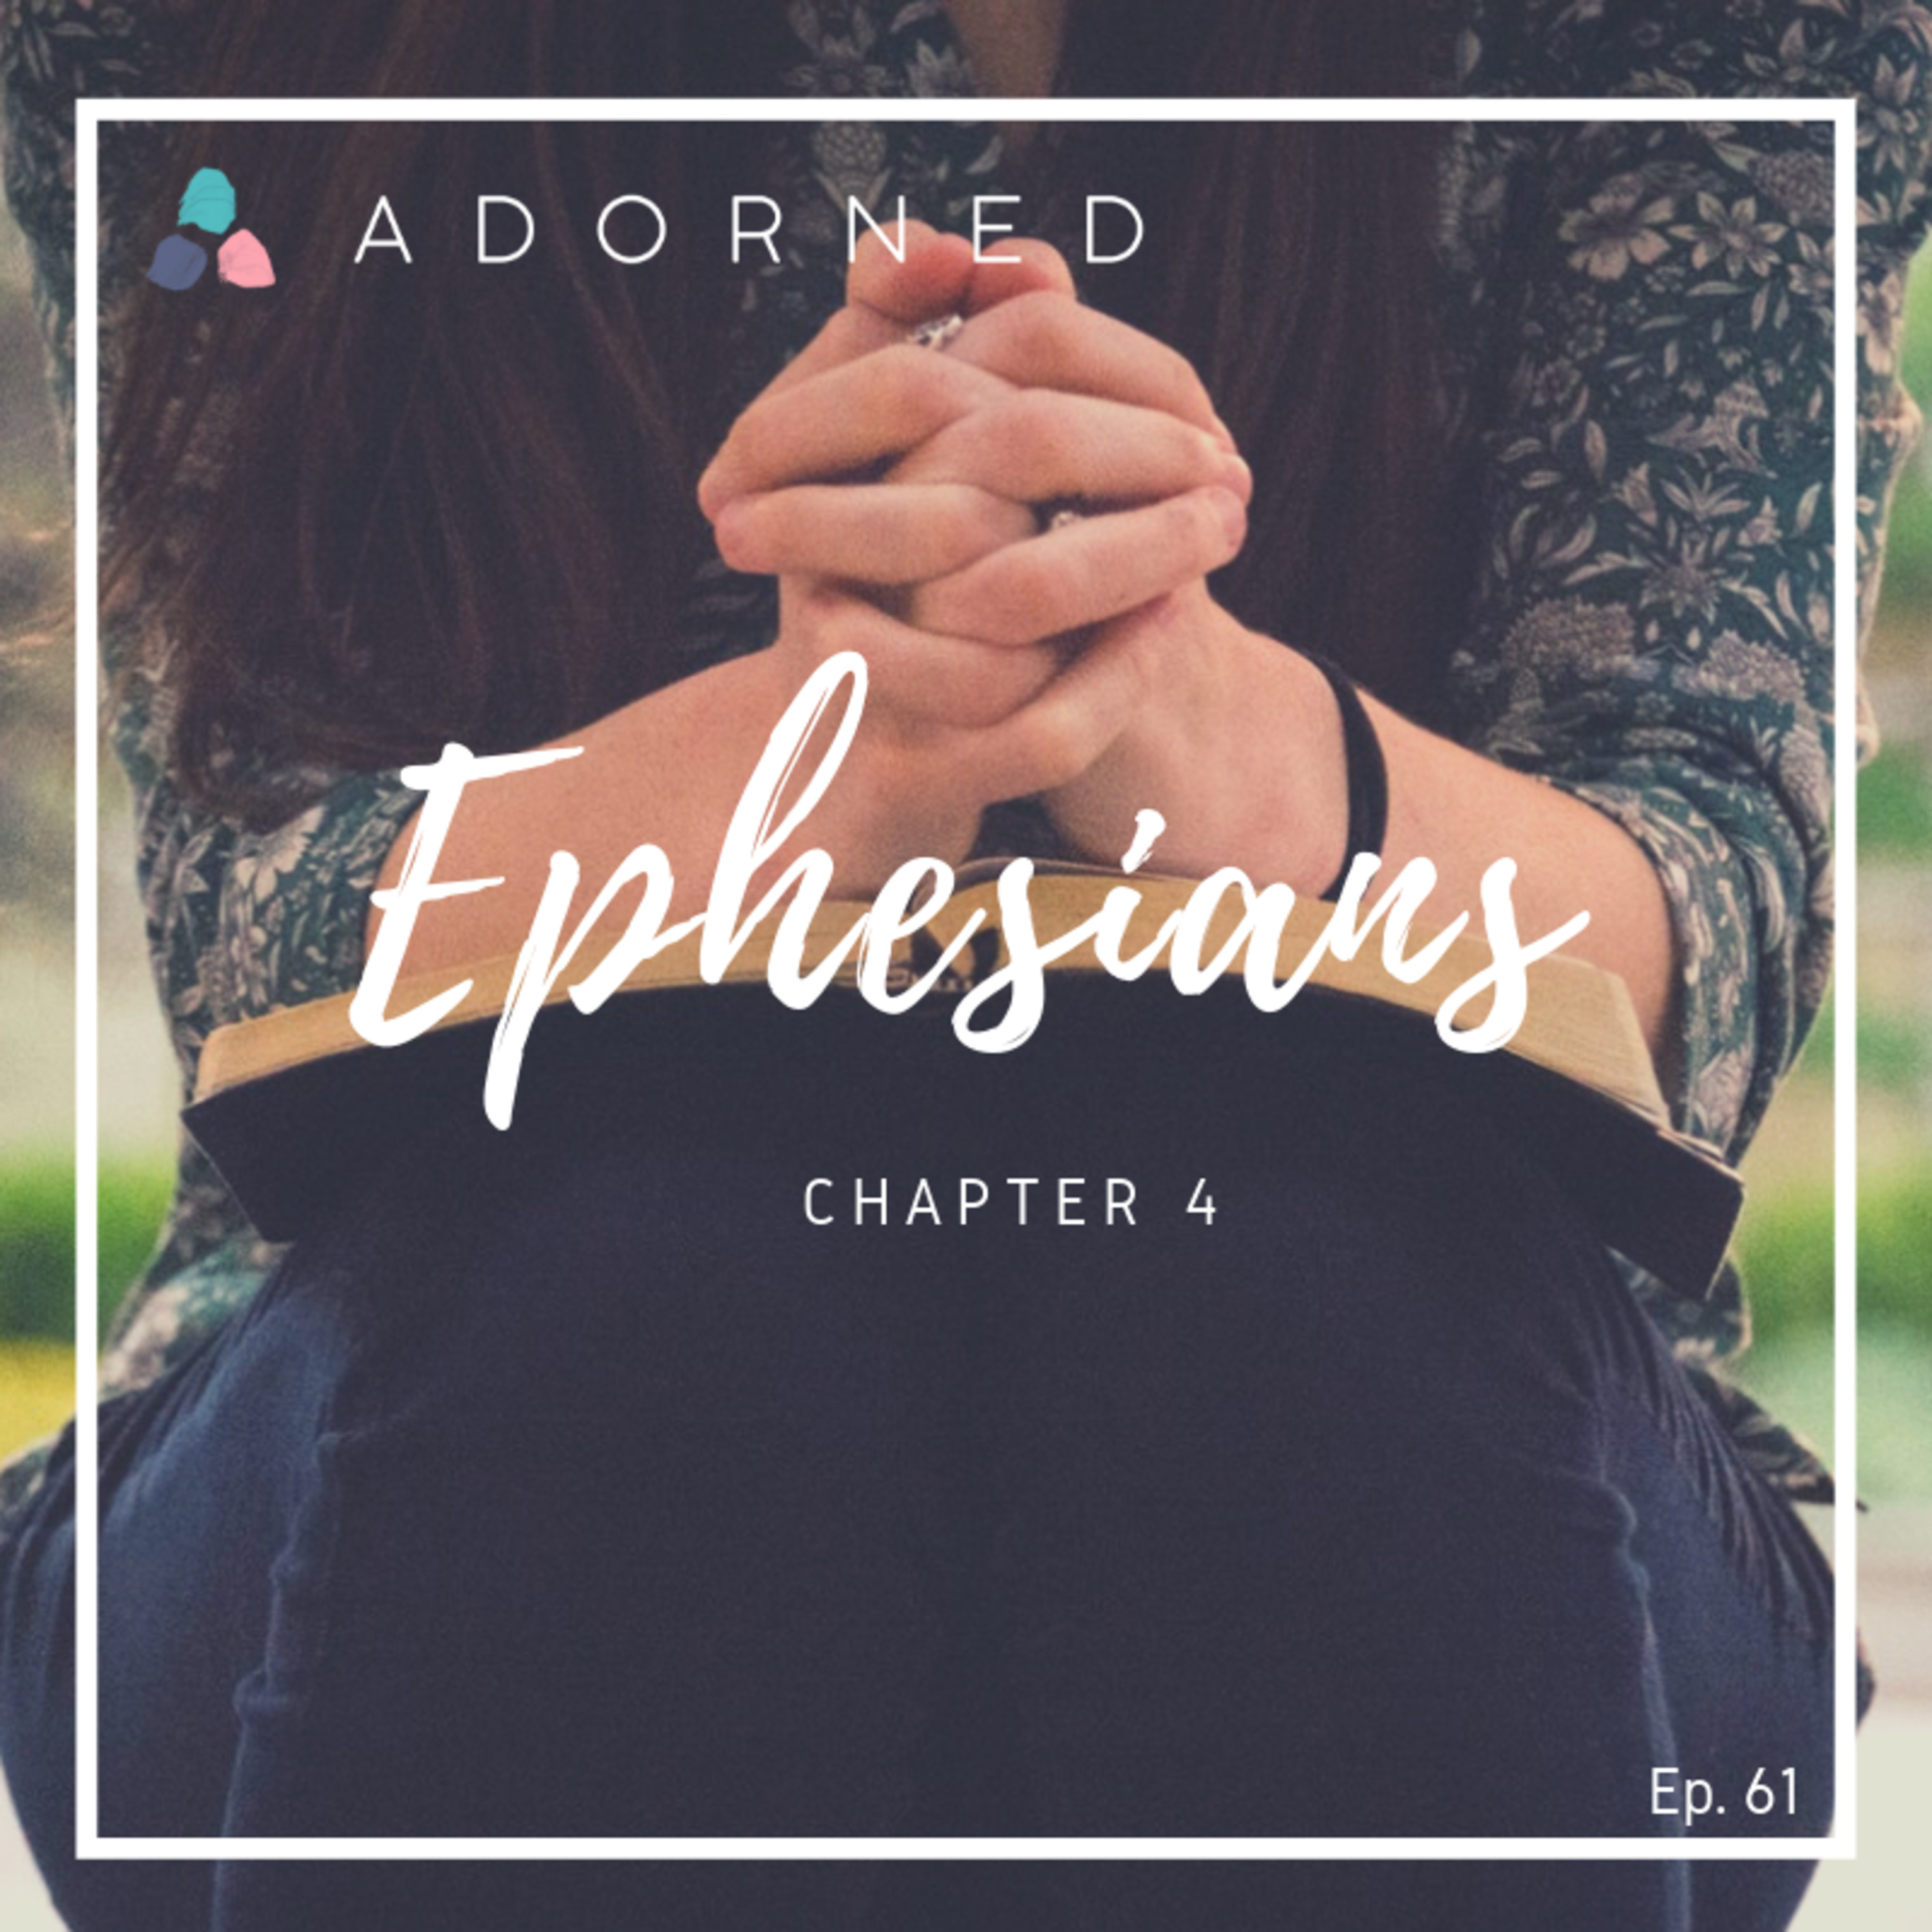 Ep. 61 - Ephesians - Chapter 4